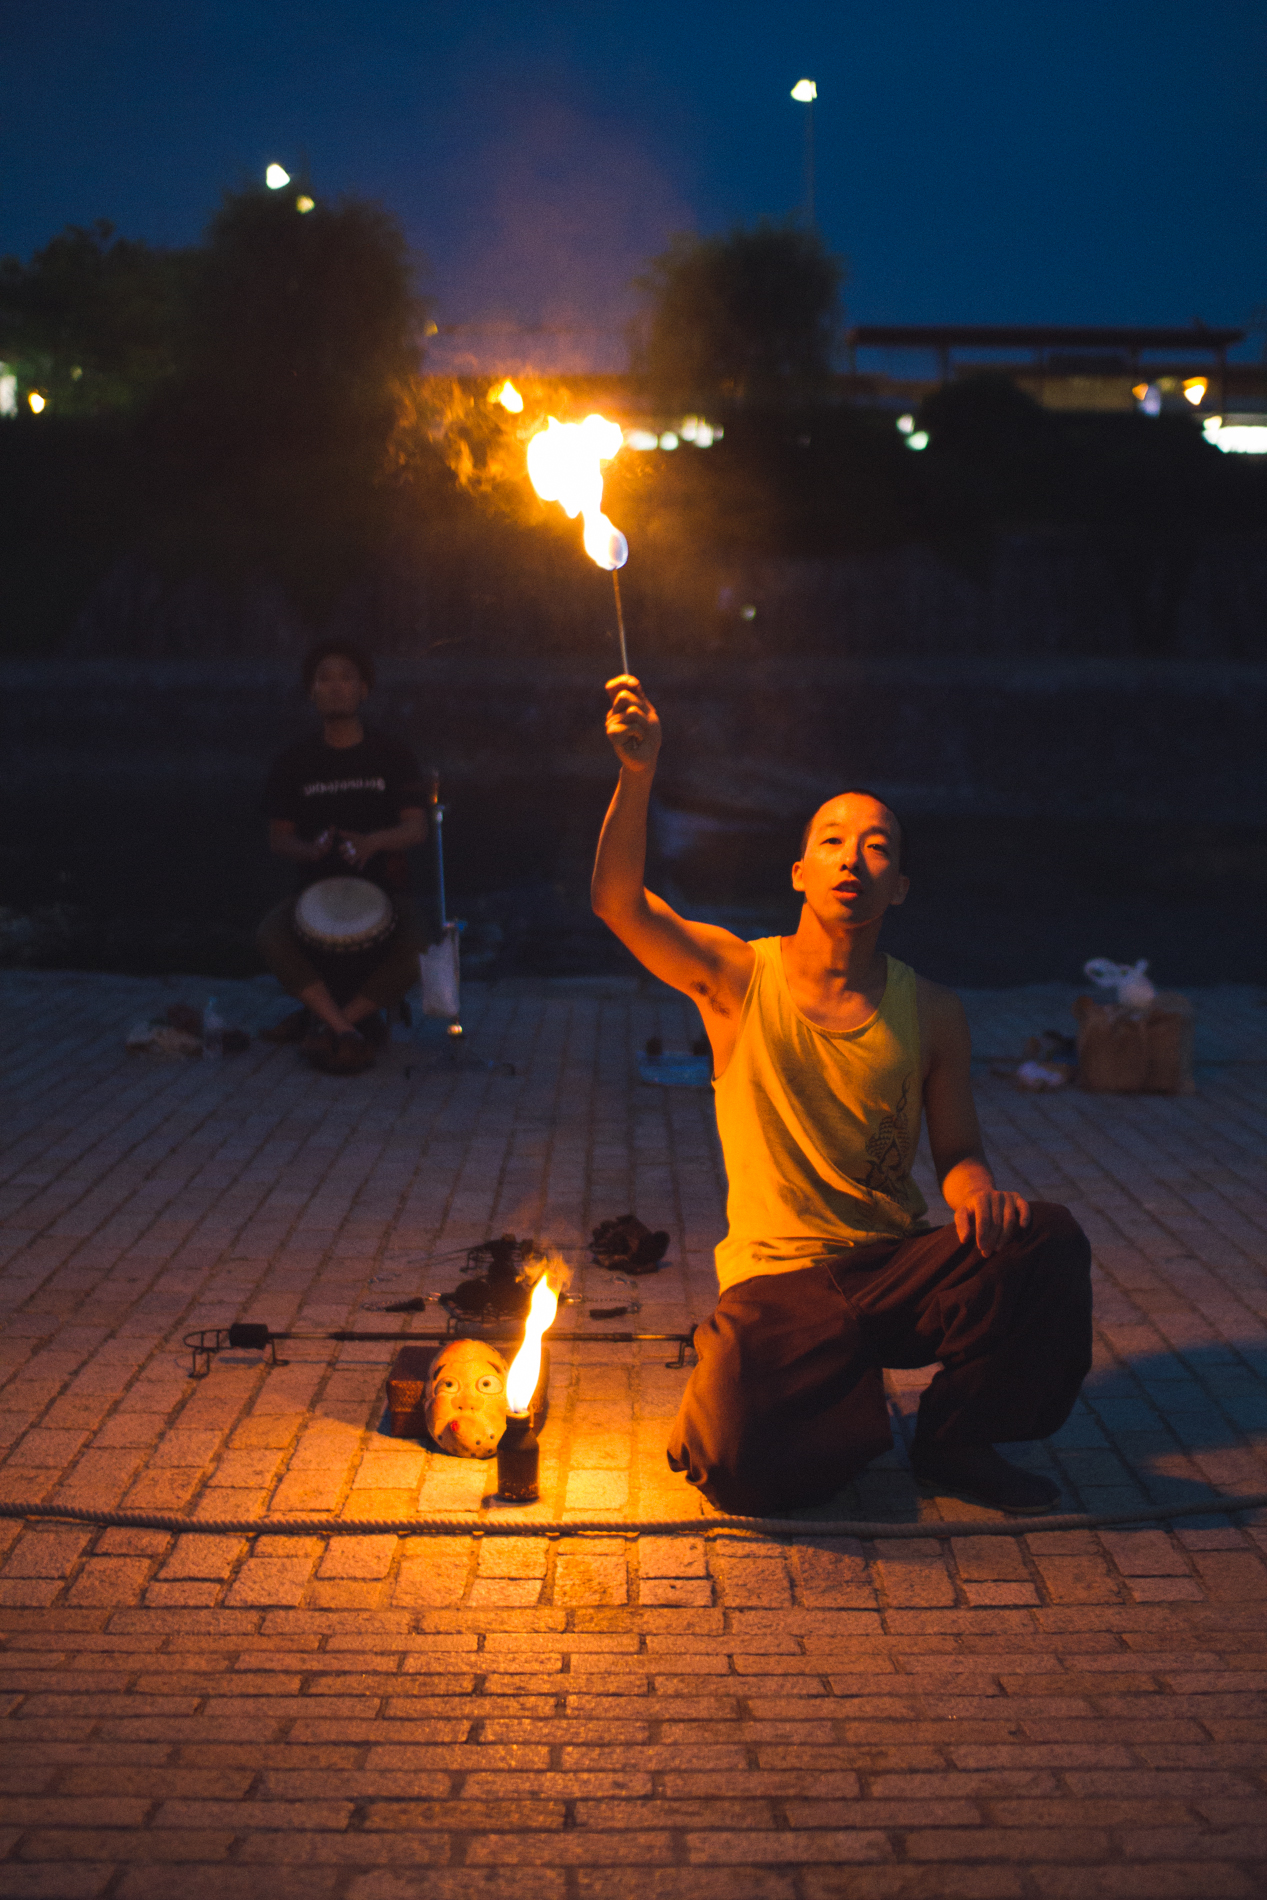 Street performer on the bank of Kamogawa River in Kyoto.